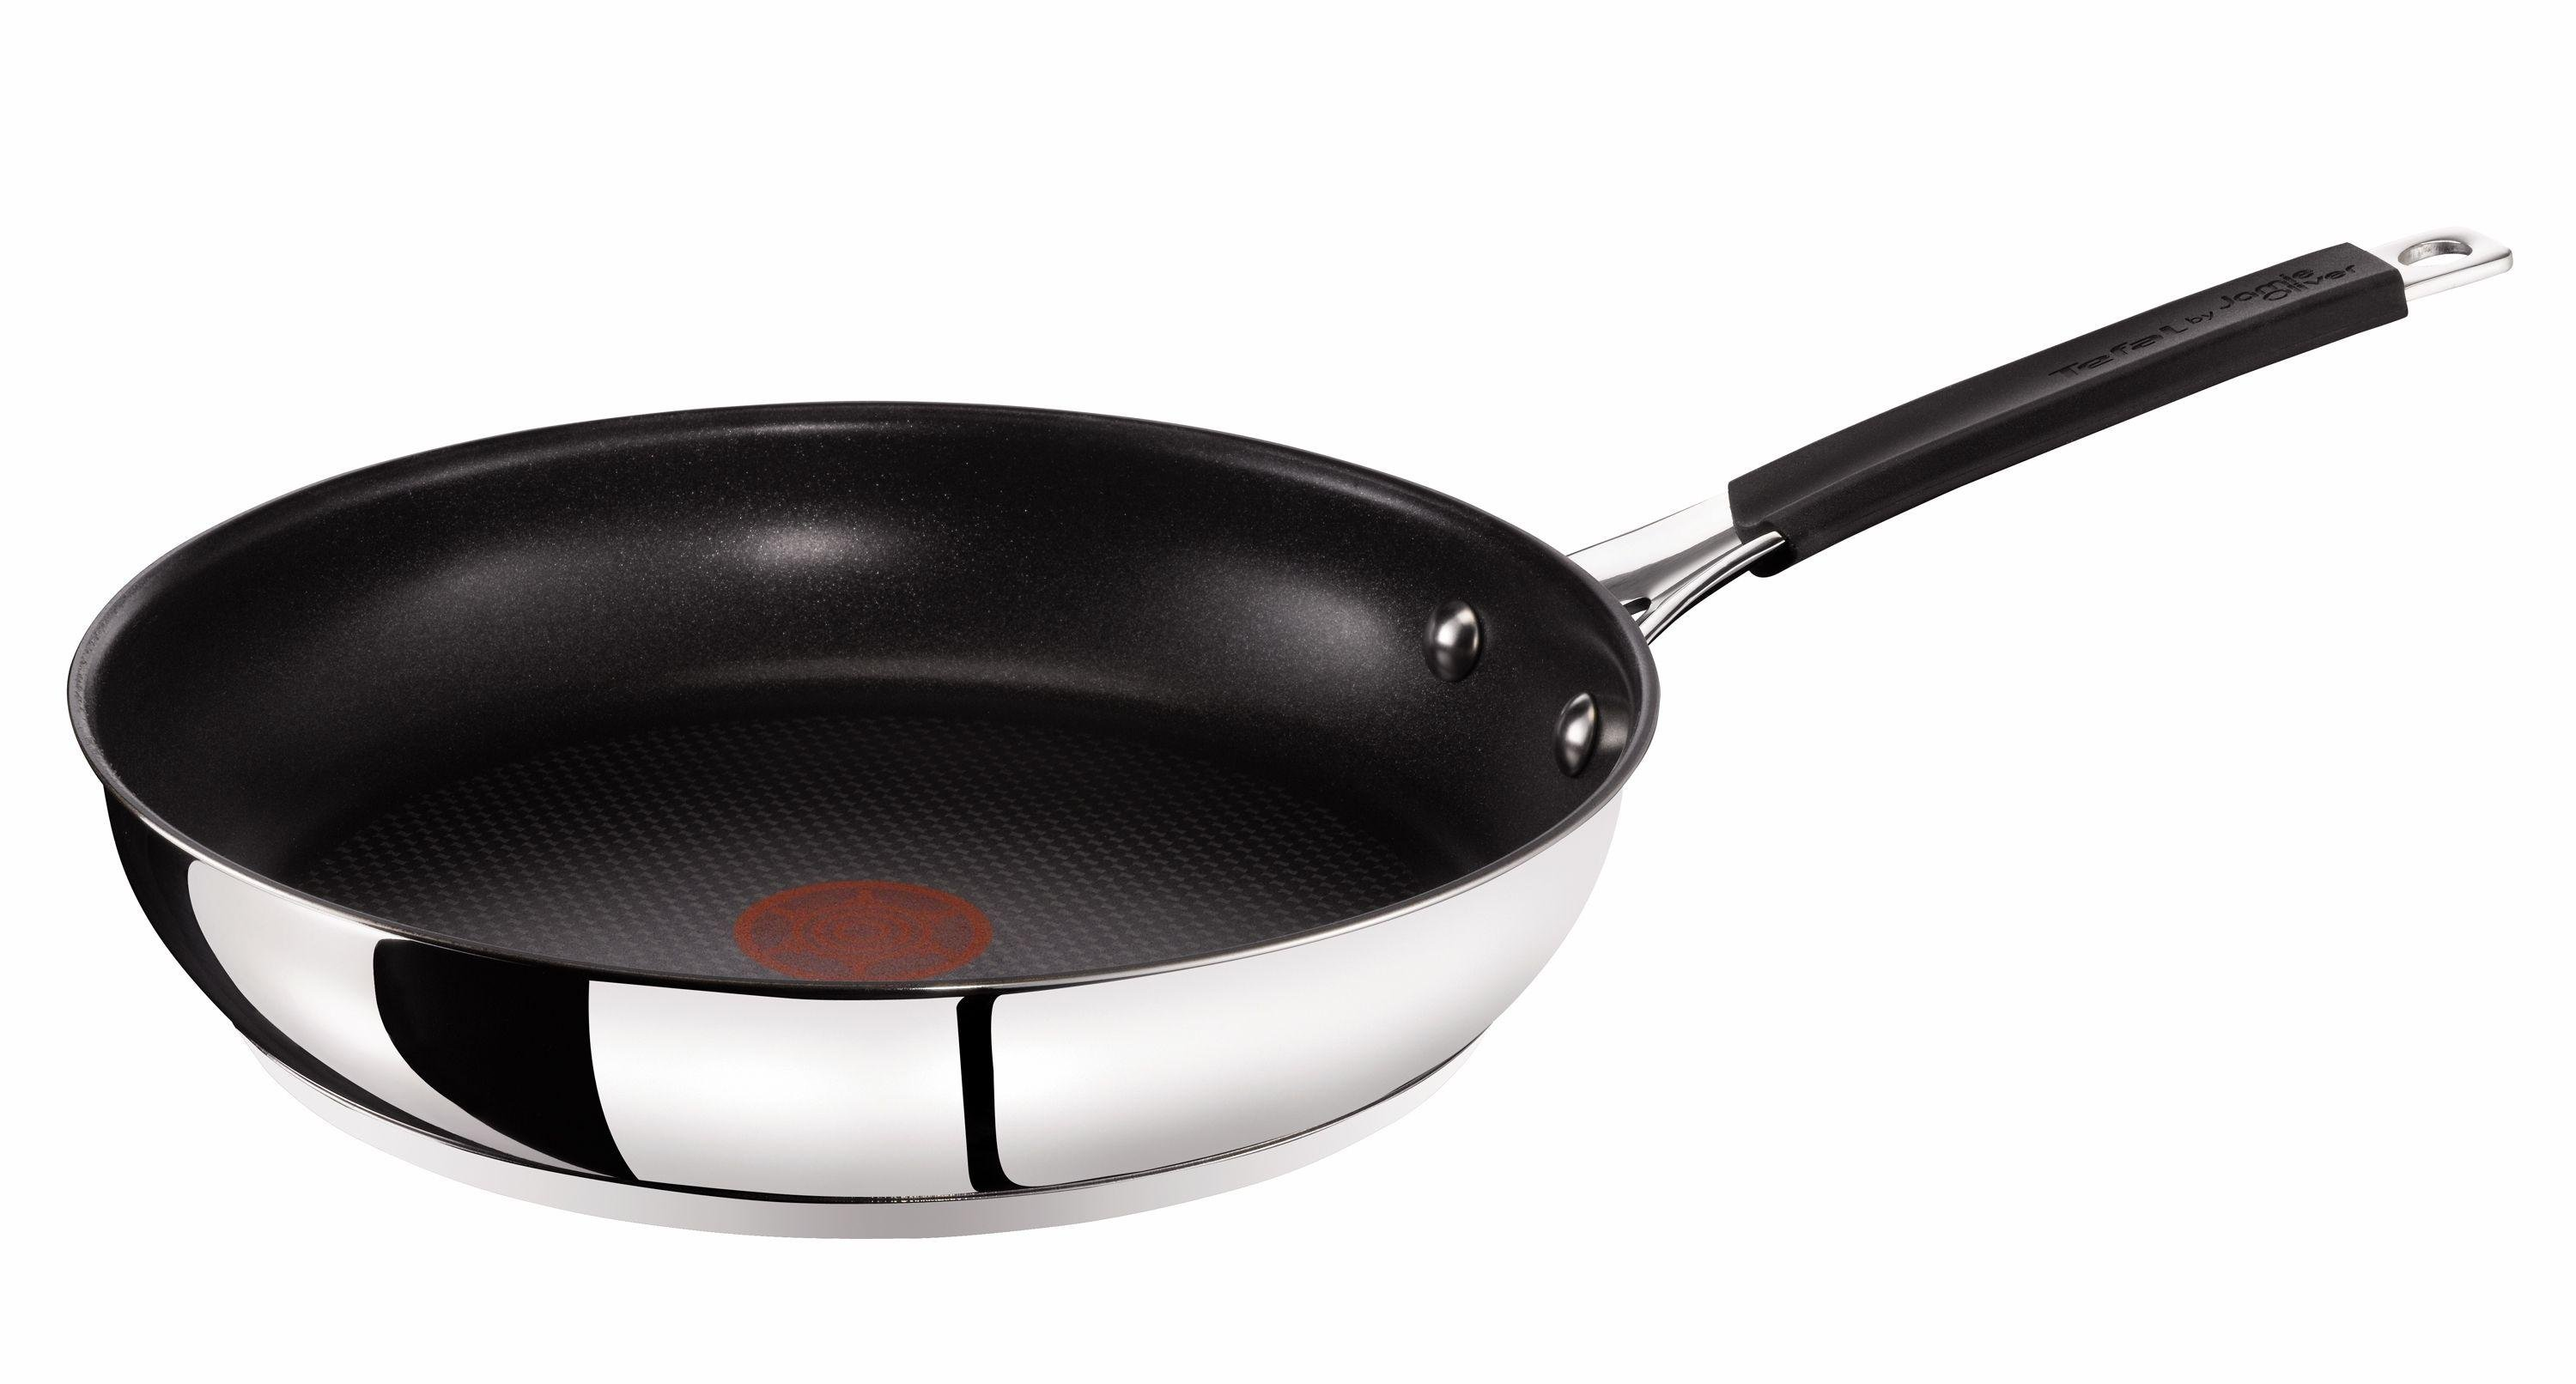 Image of Jamie Oliver by Tefal - Stainless Steel 28cm Frying Pan